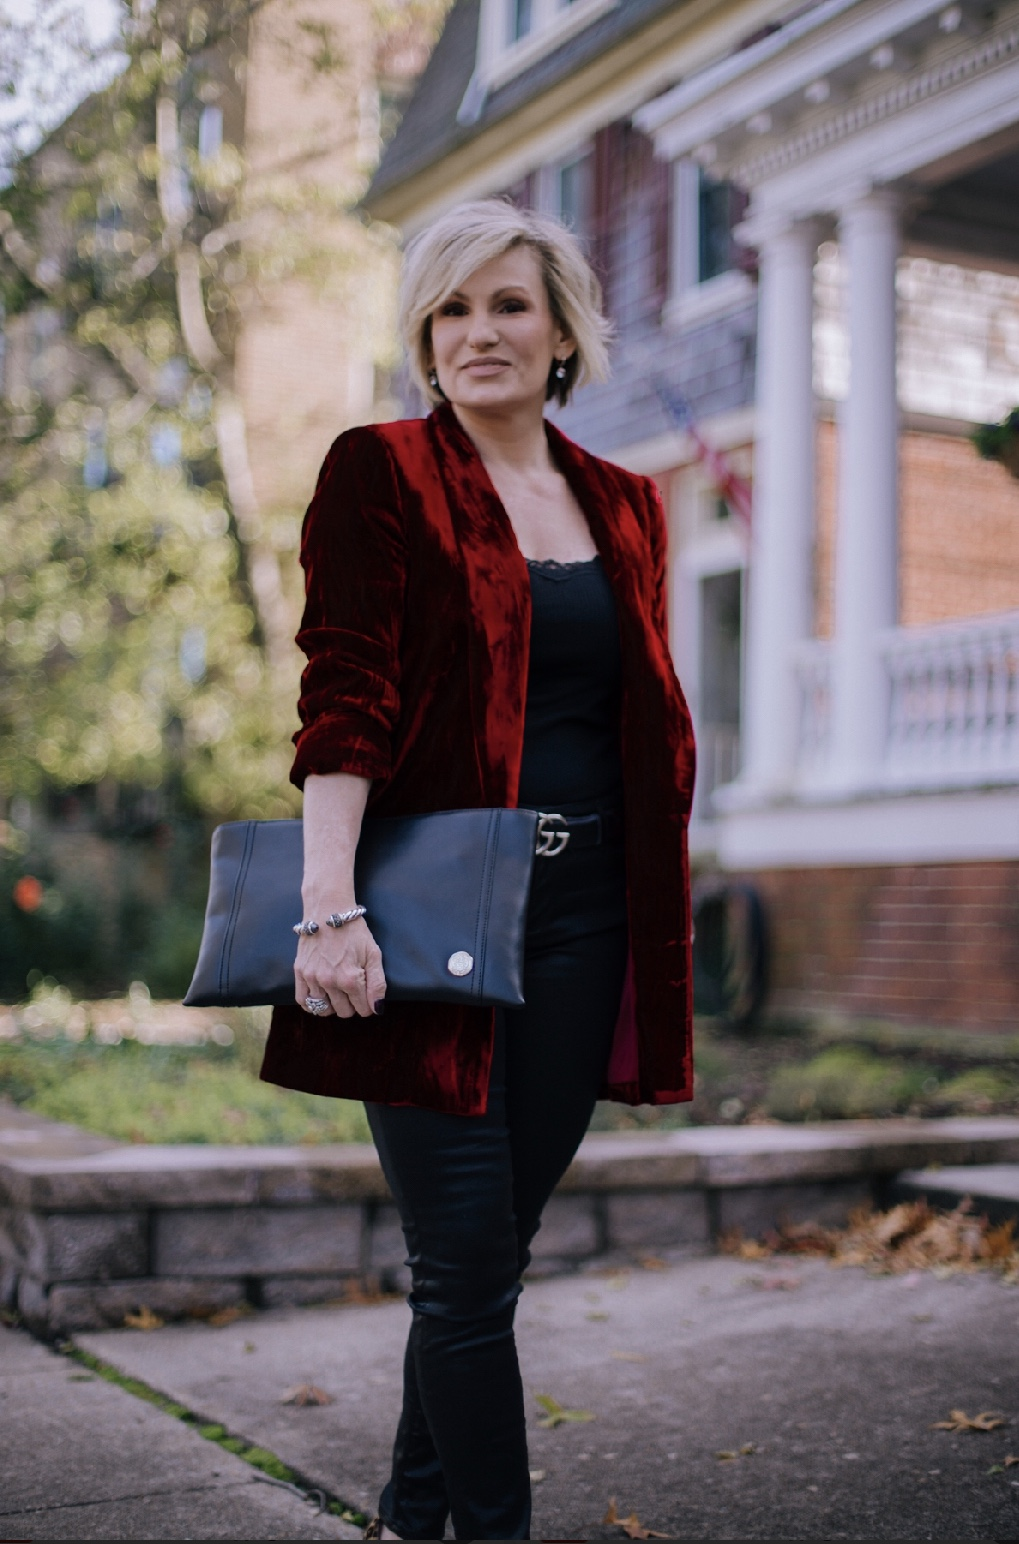 Velvet is a fall favorite and stands the test of time. Slipping a vibrant velvet jacket over an all-black palette adds instant richness and texture. Throw on your favorite animal print shoes and you have a simple but elegant holiday look. Shop this look  here .